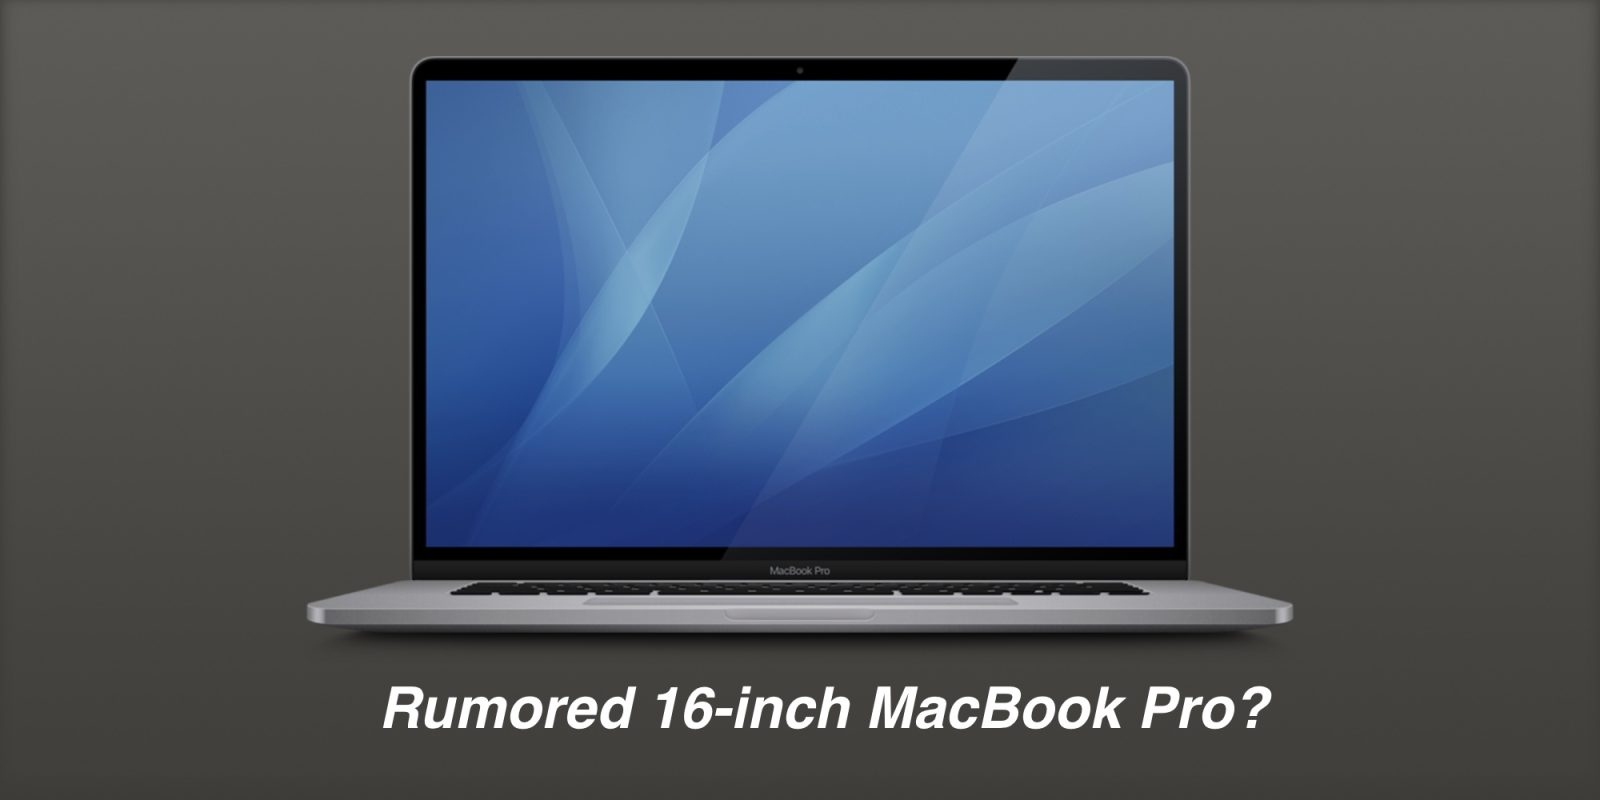 Is this the rumored 16-inch MacBook Pro? macOS beta includes unreleased hardware icon